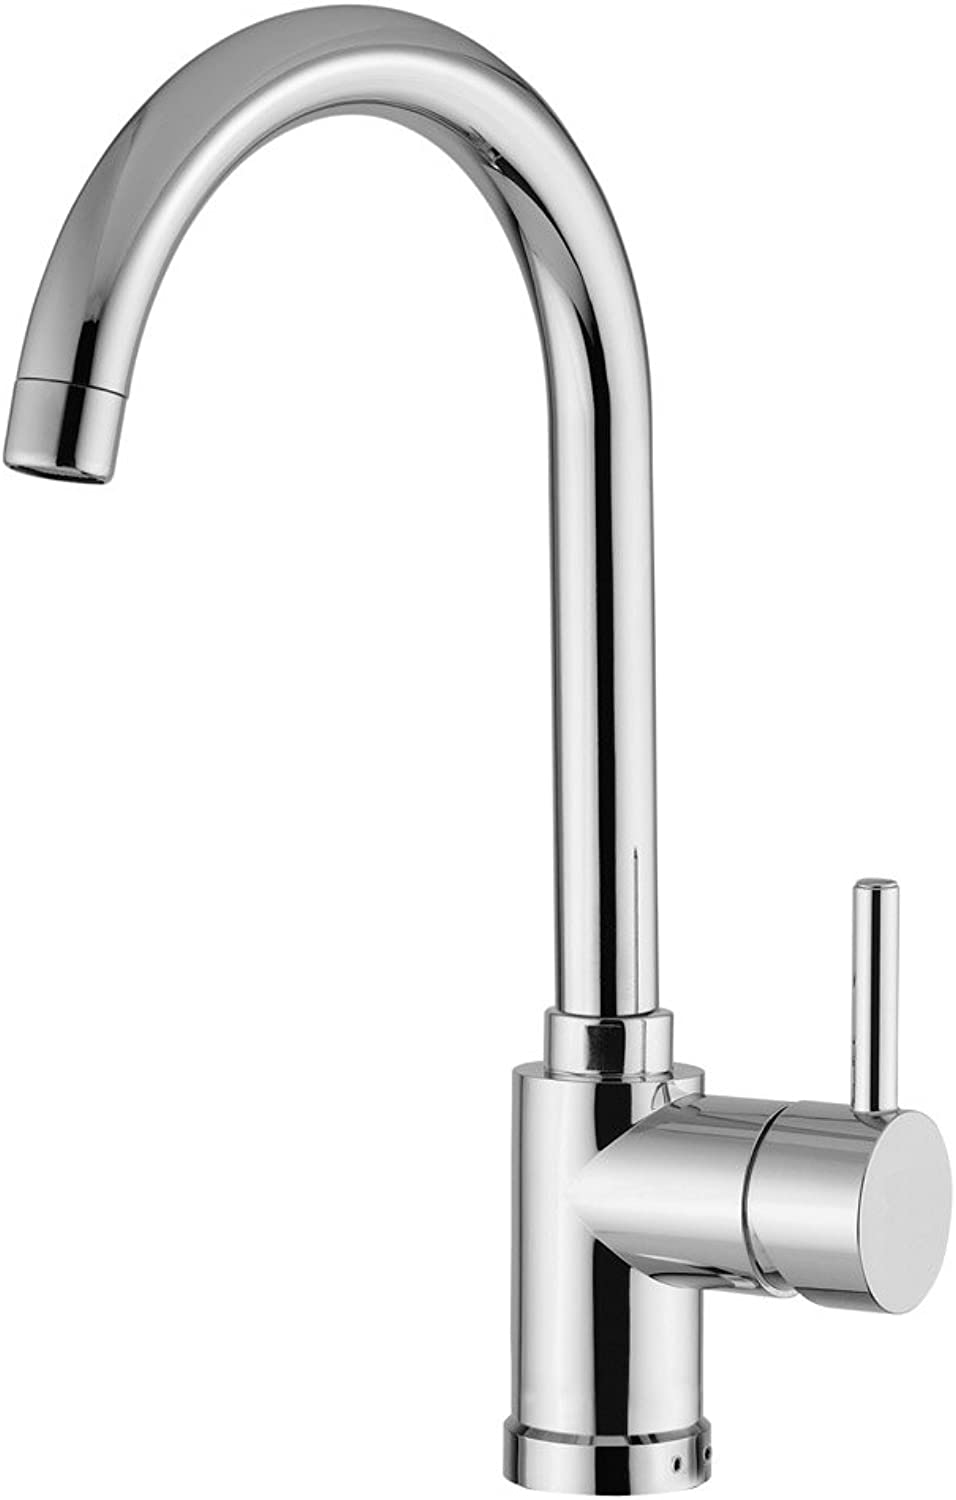 First AM10004?Single Lever Sink Mixer for Kitchen, Chrome